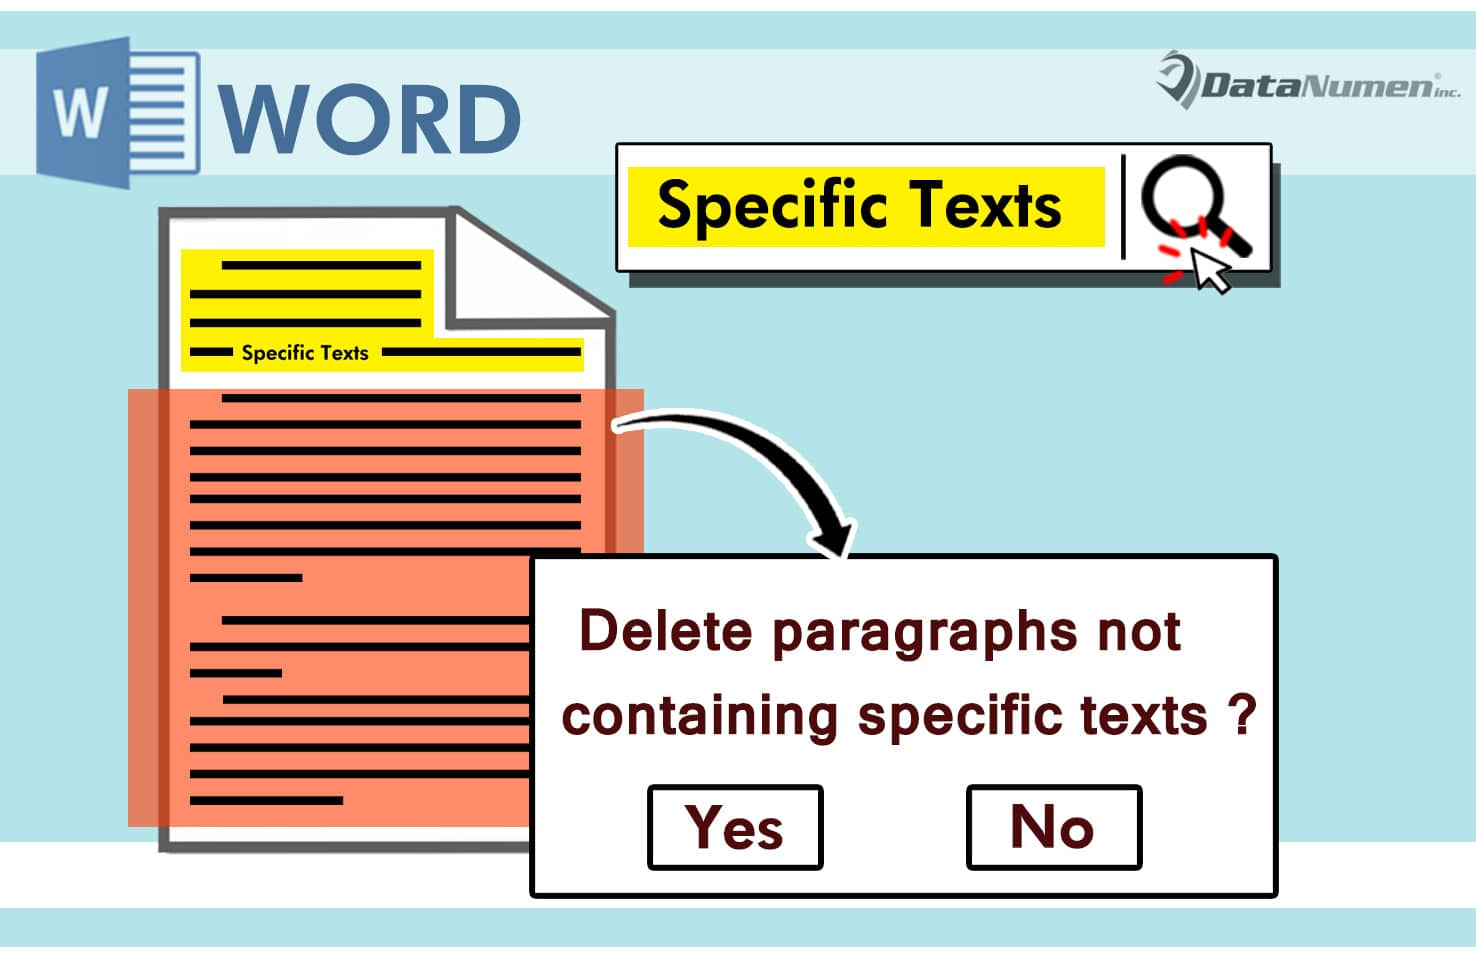 Delete Paragraphs Not Containing Specific Texts in Your Word Document